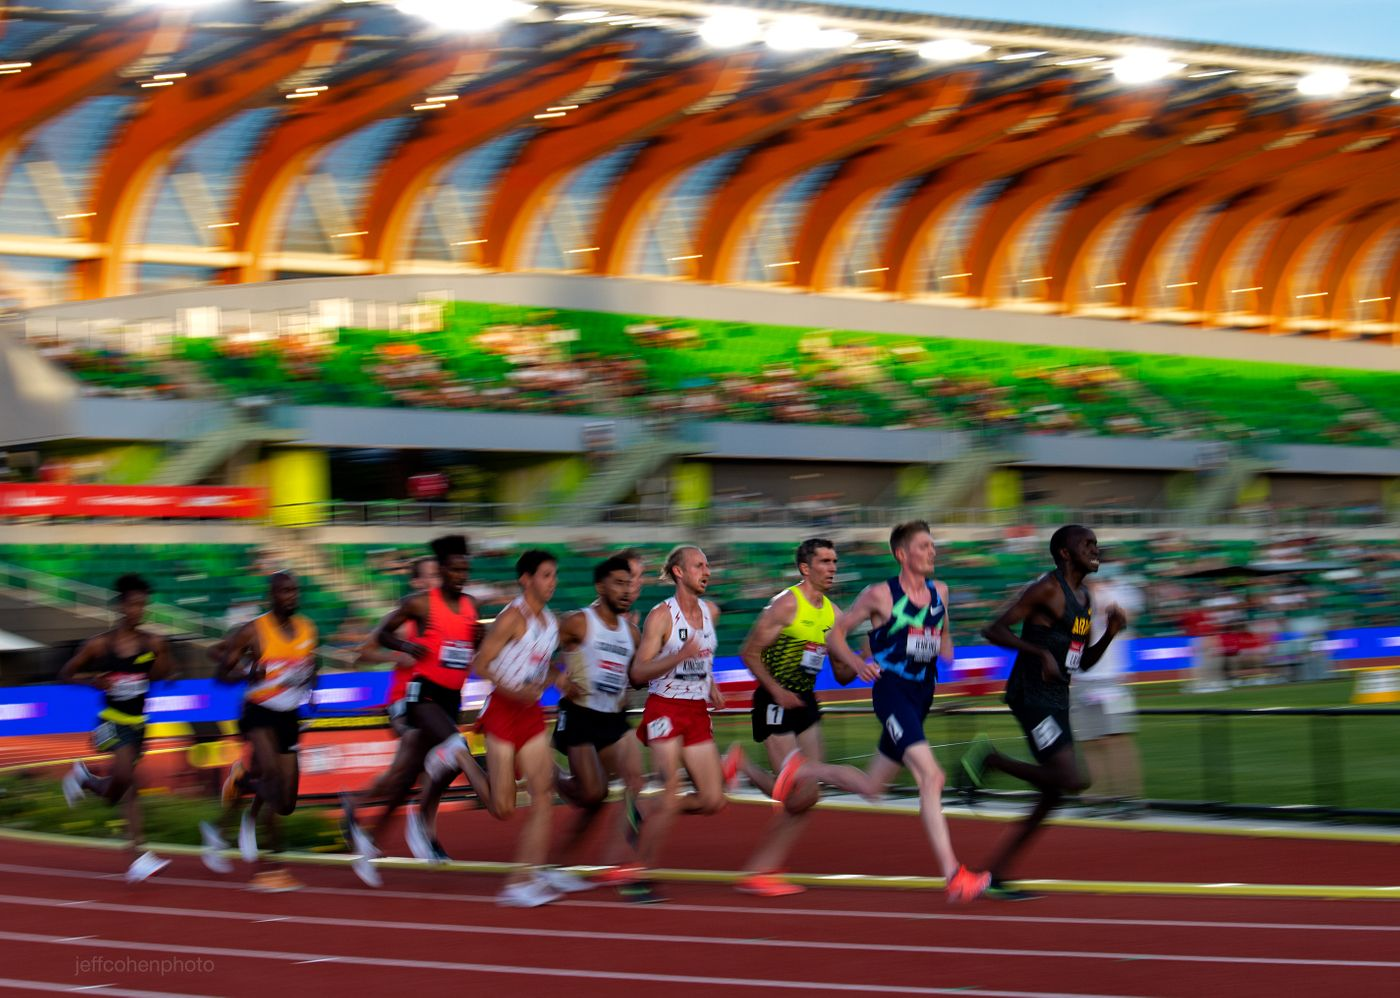 5000m-2021-US-Oly-Trials--day-5-2392-jeff-cohen-photo--web.jpg